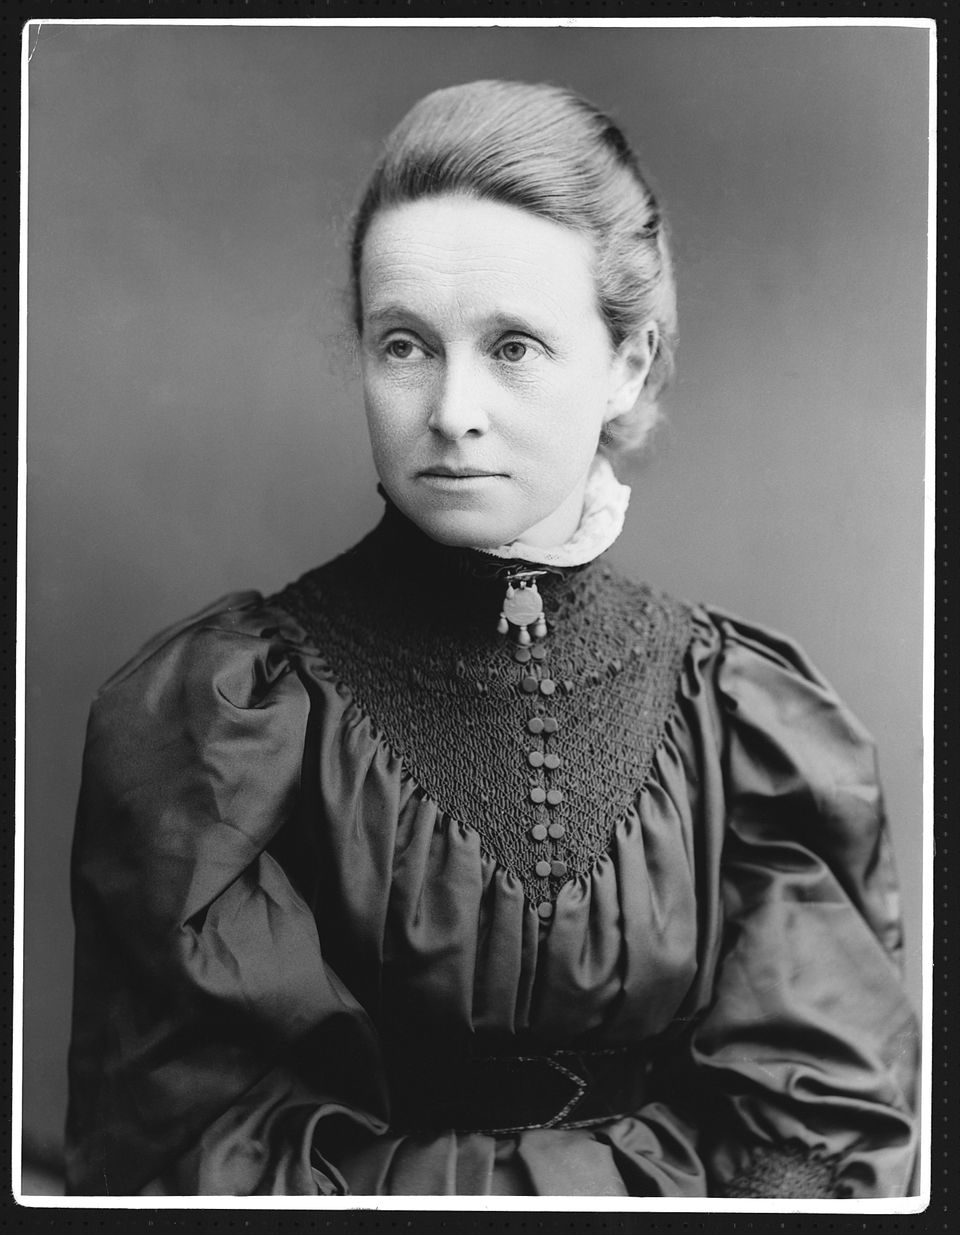 Suffragist Millicent Fawcett will become the first woman to be honoured with a statue in Parliament